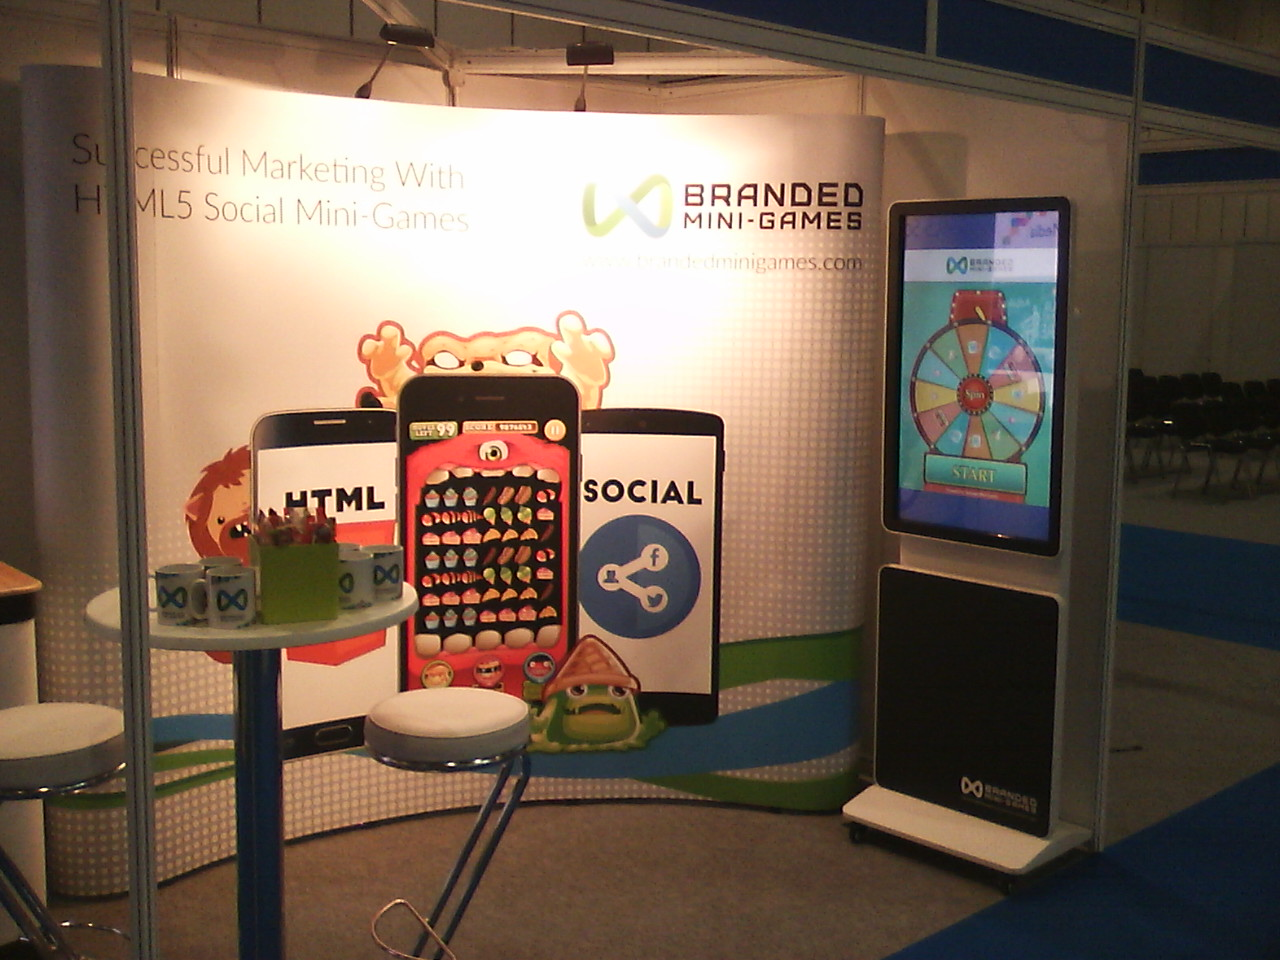 Exhibition Stand Game : How to generate at an exhibition using a mini game